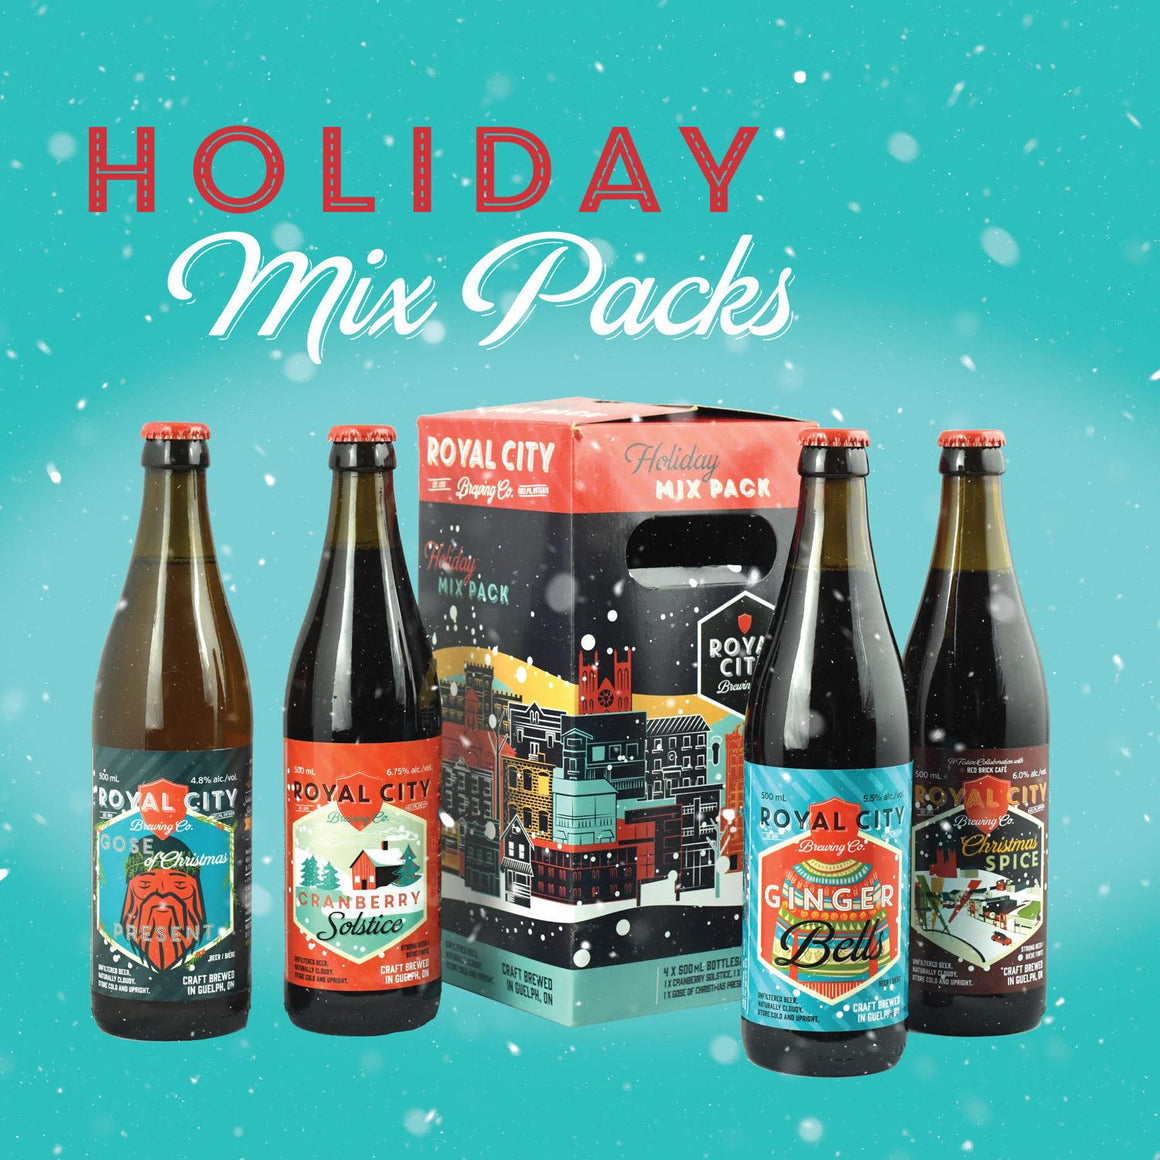 Royal City Holiday Mix Pack